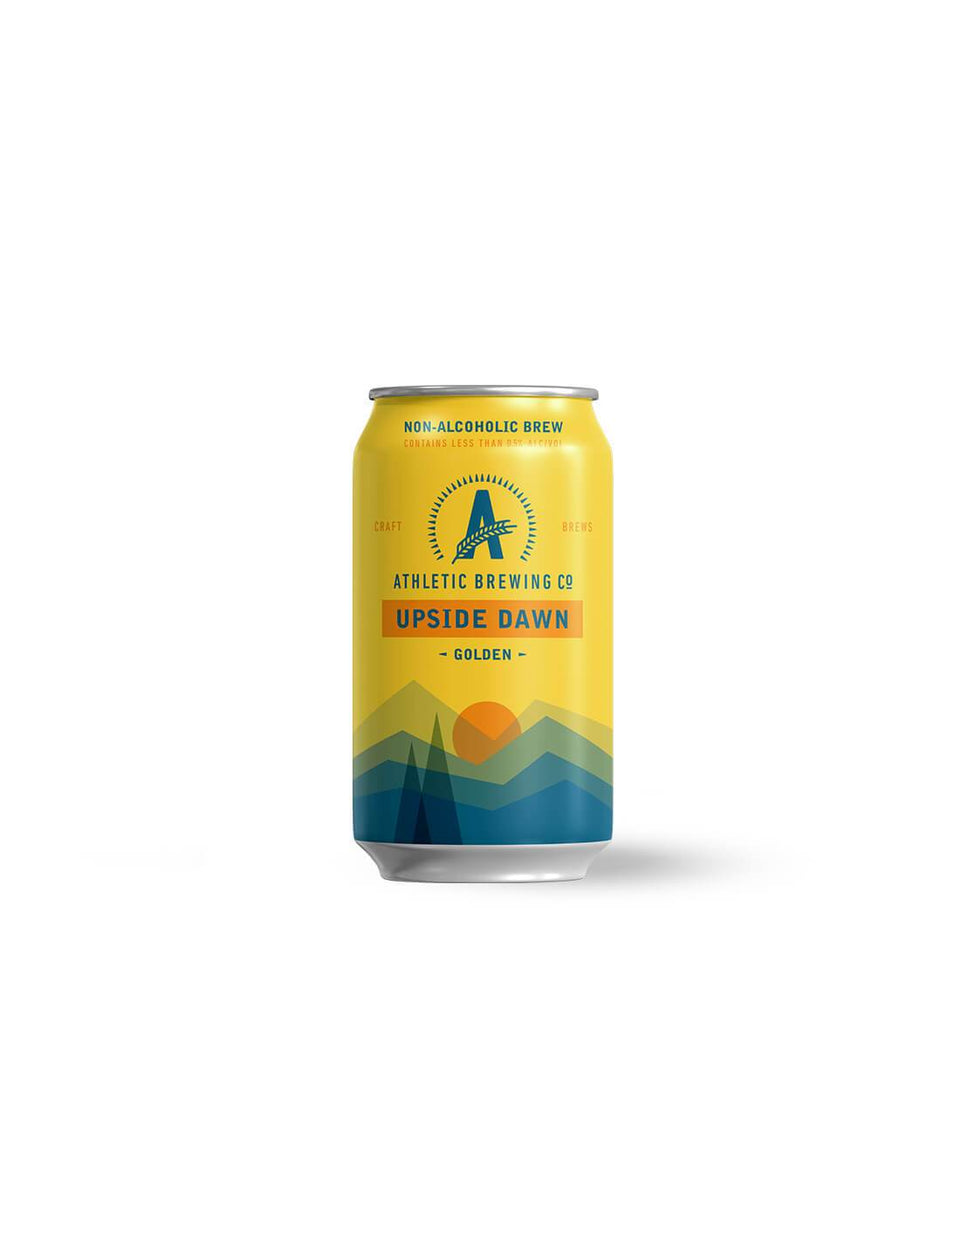 Athletic Brewing Co Upside Dawn Golden Ale 355mL | Craftzero